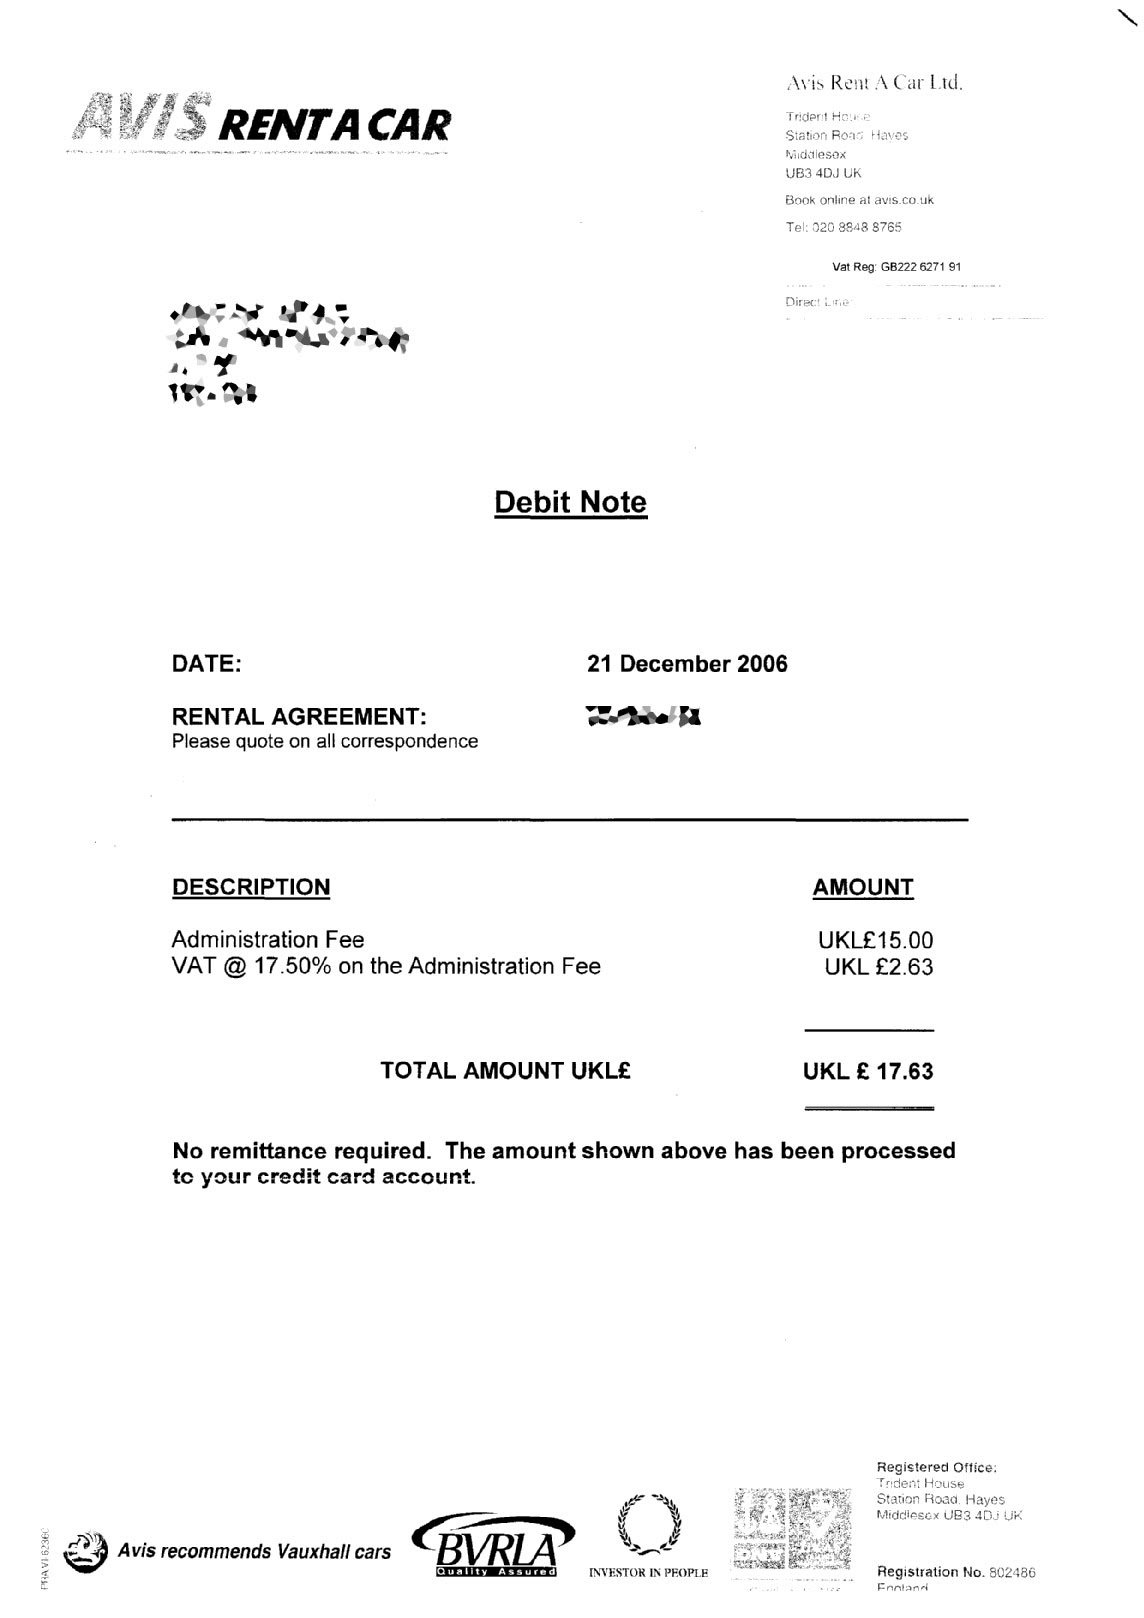 Letter Of Debit Note Amazing Pretty Debit Note Letter Pictures Inspiration  Resume Ideas .